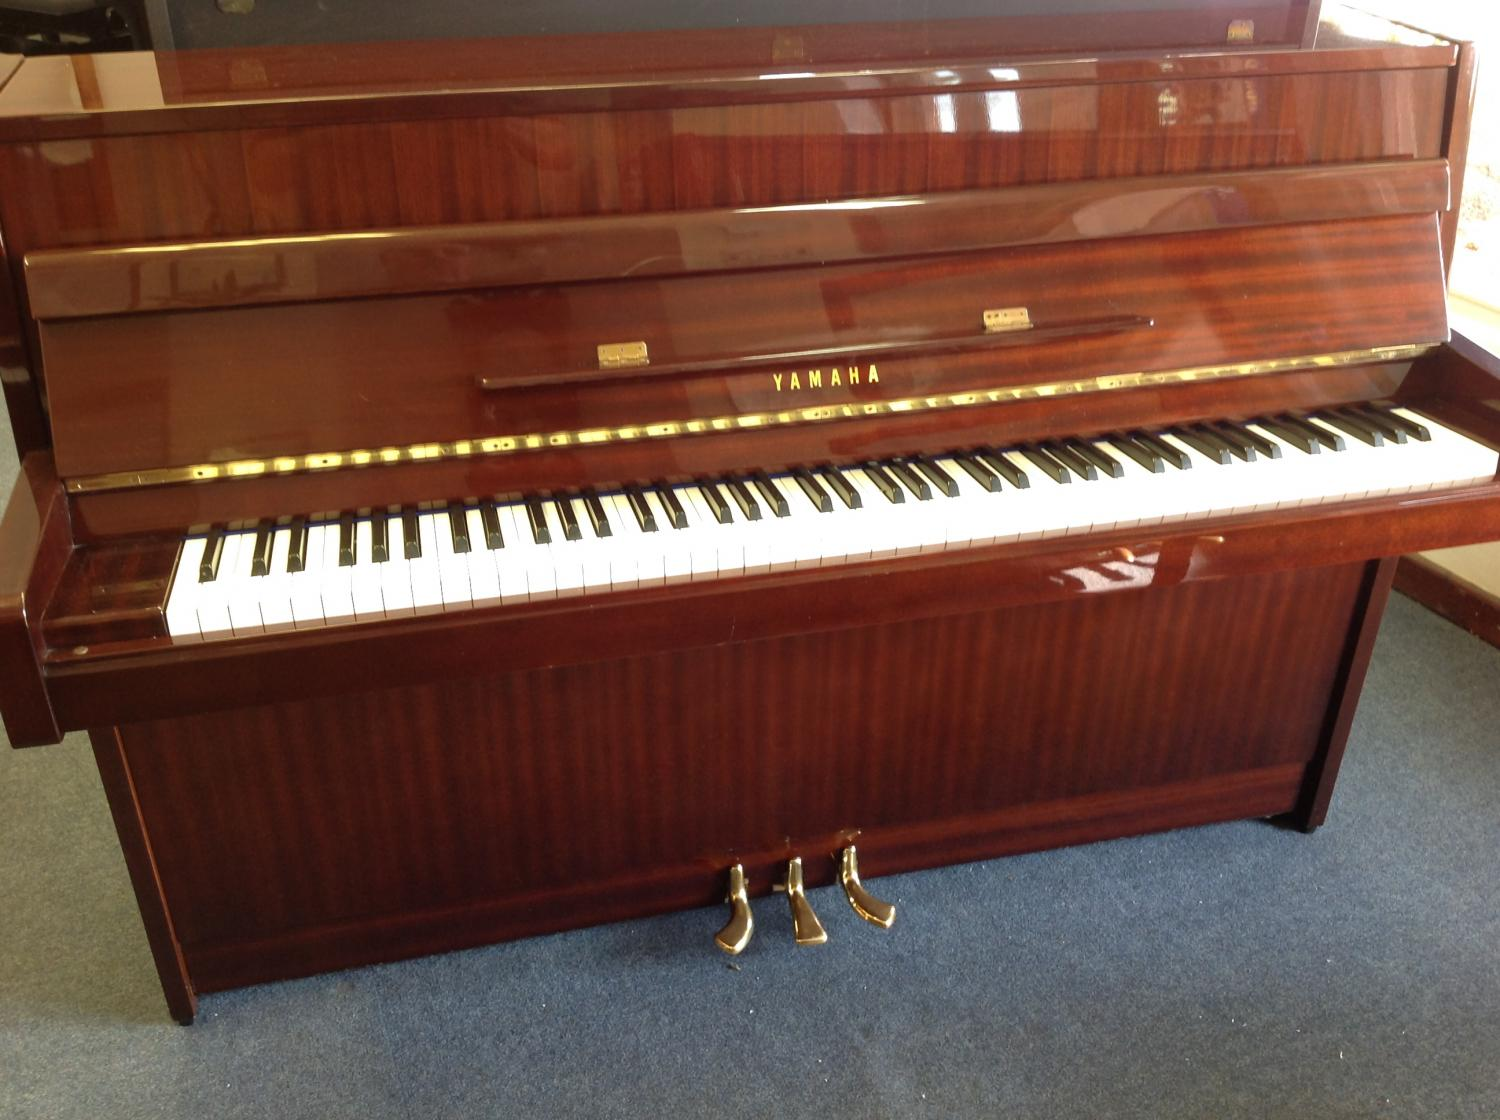 Yamaha modern upright piano for sale in modern pianos for sale for Piano upright dimensions